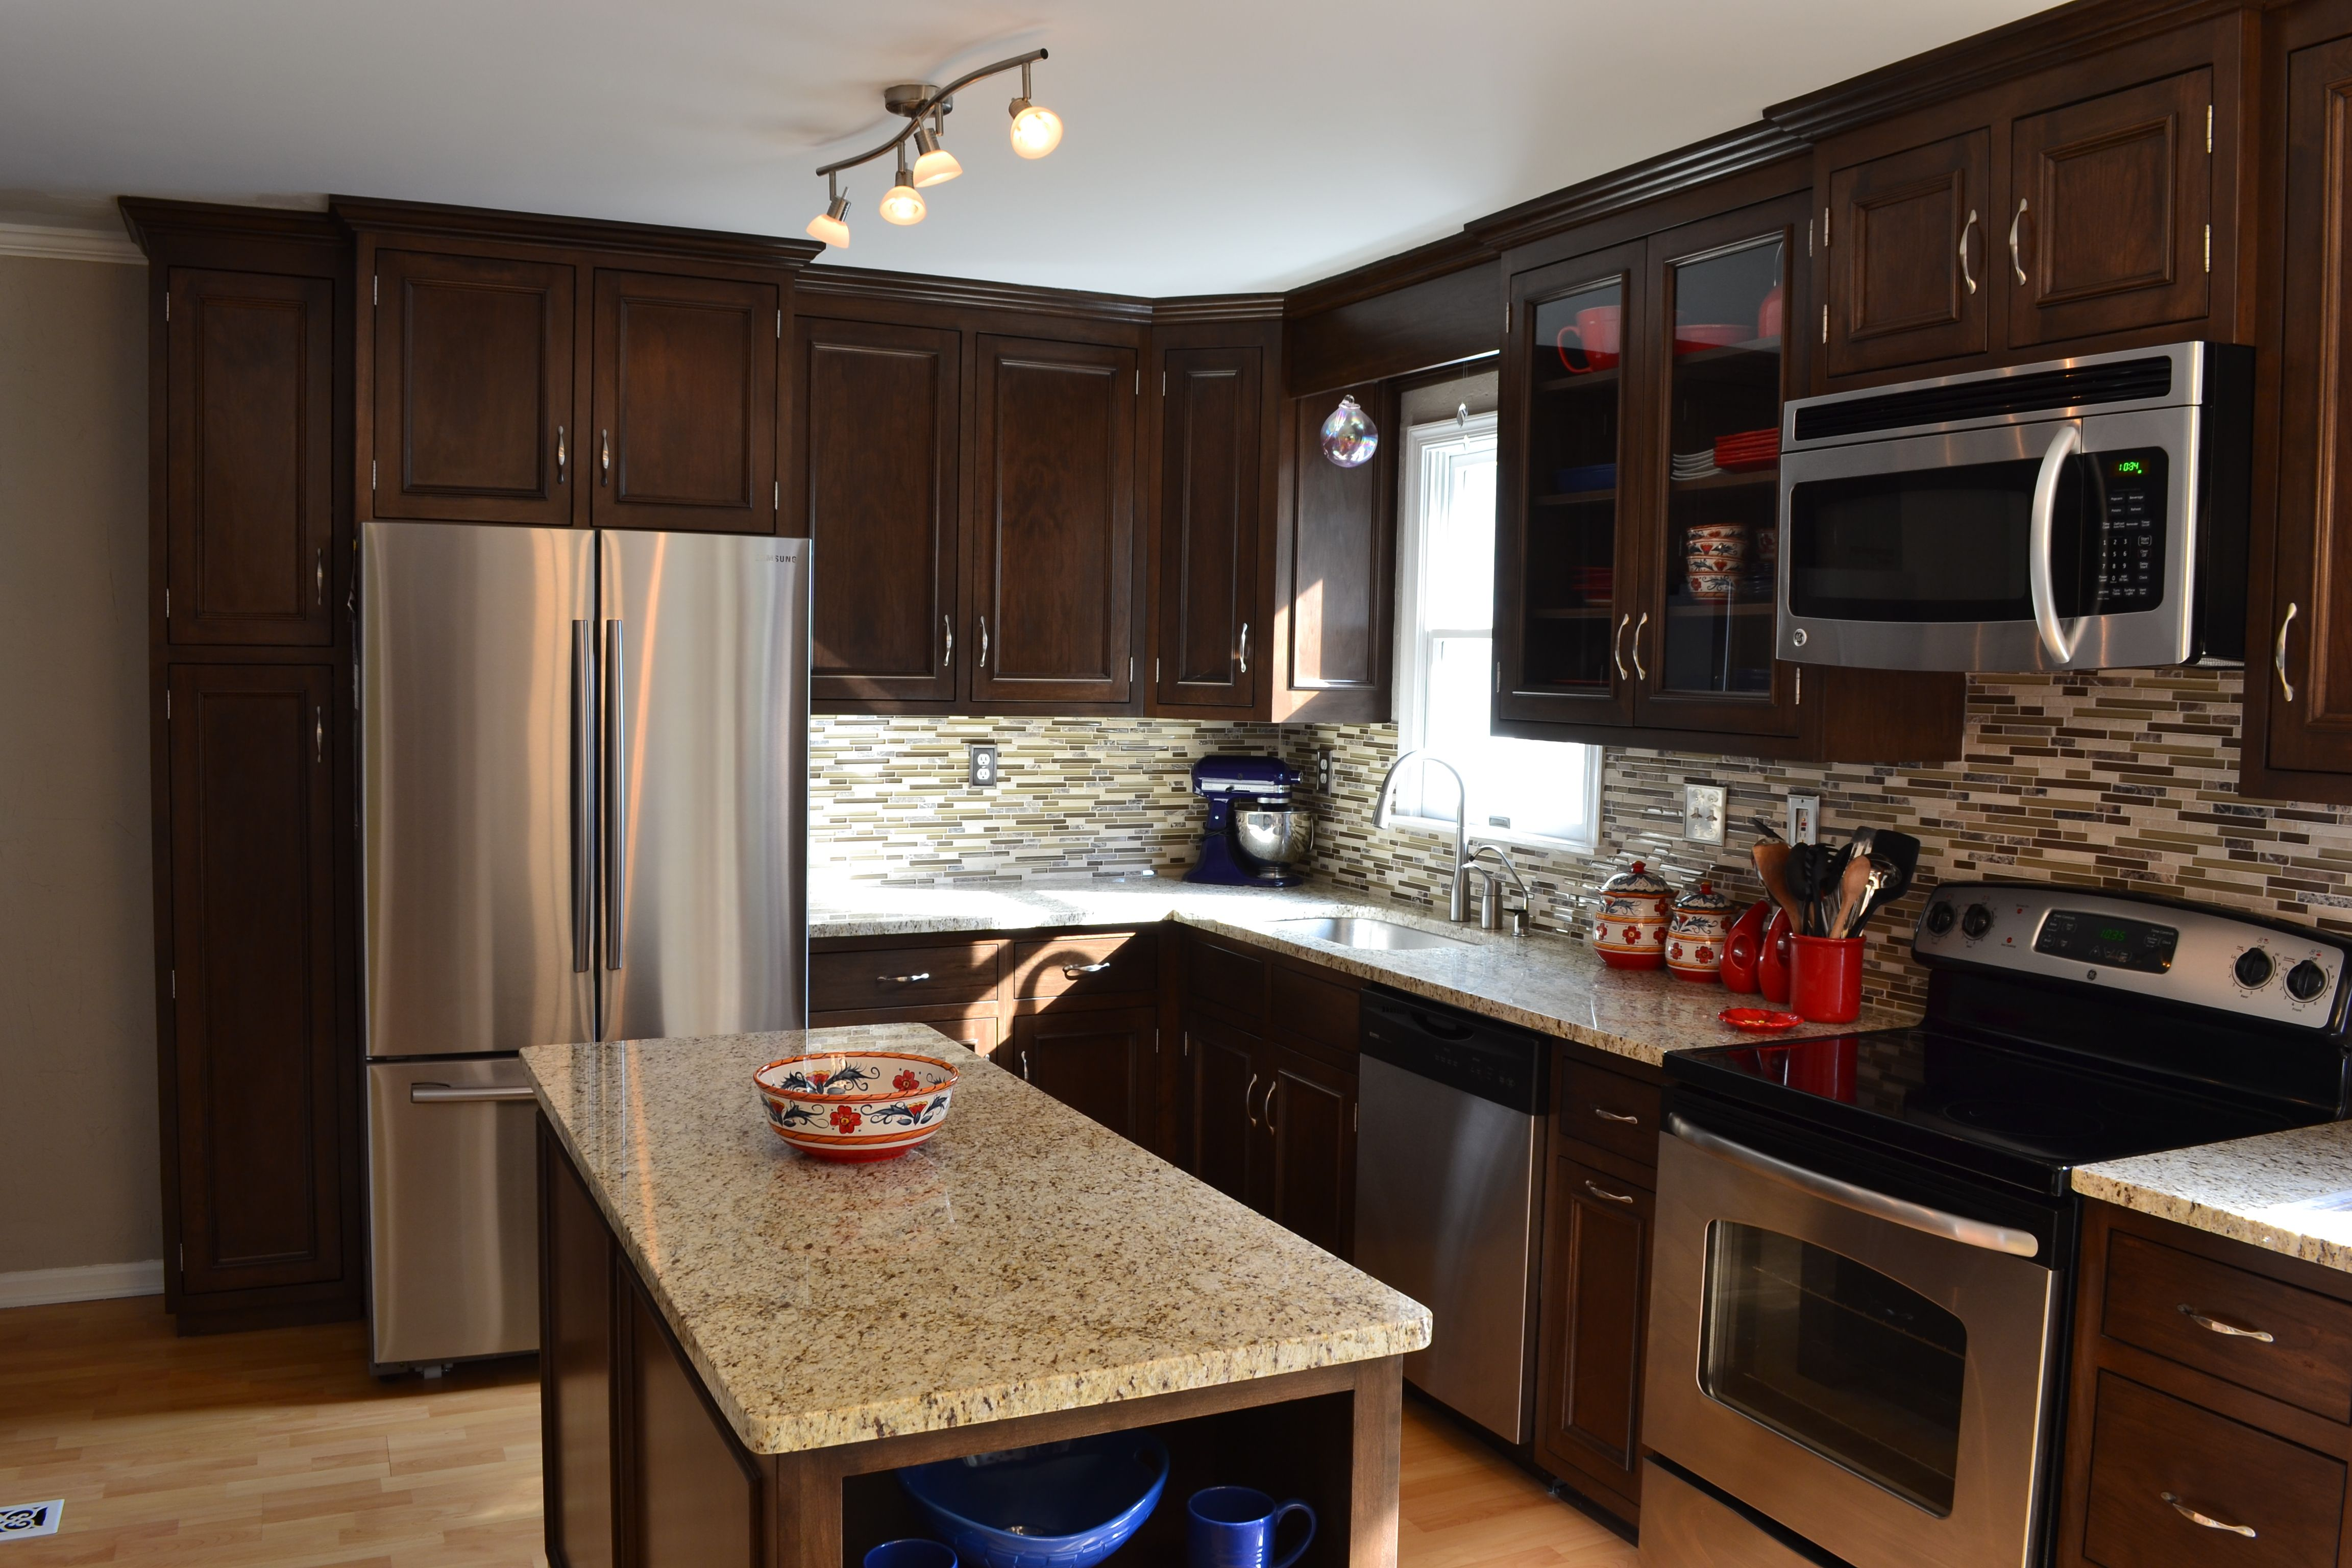 Custom Cabinets In Frederick Md Full Kitchen Remodel Kitchen Remodel Custom Cabinets